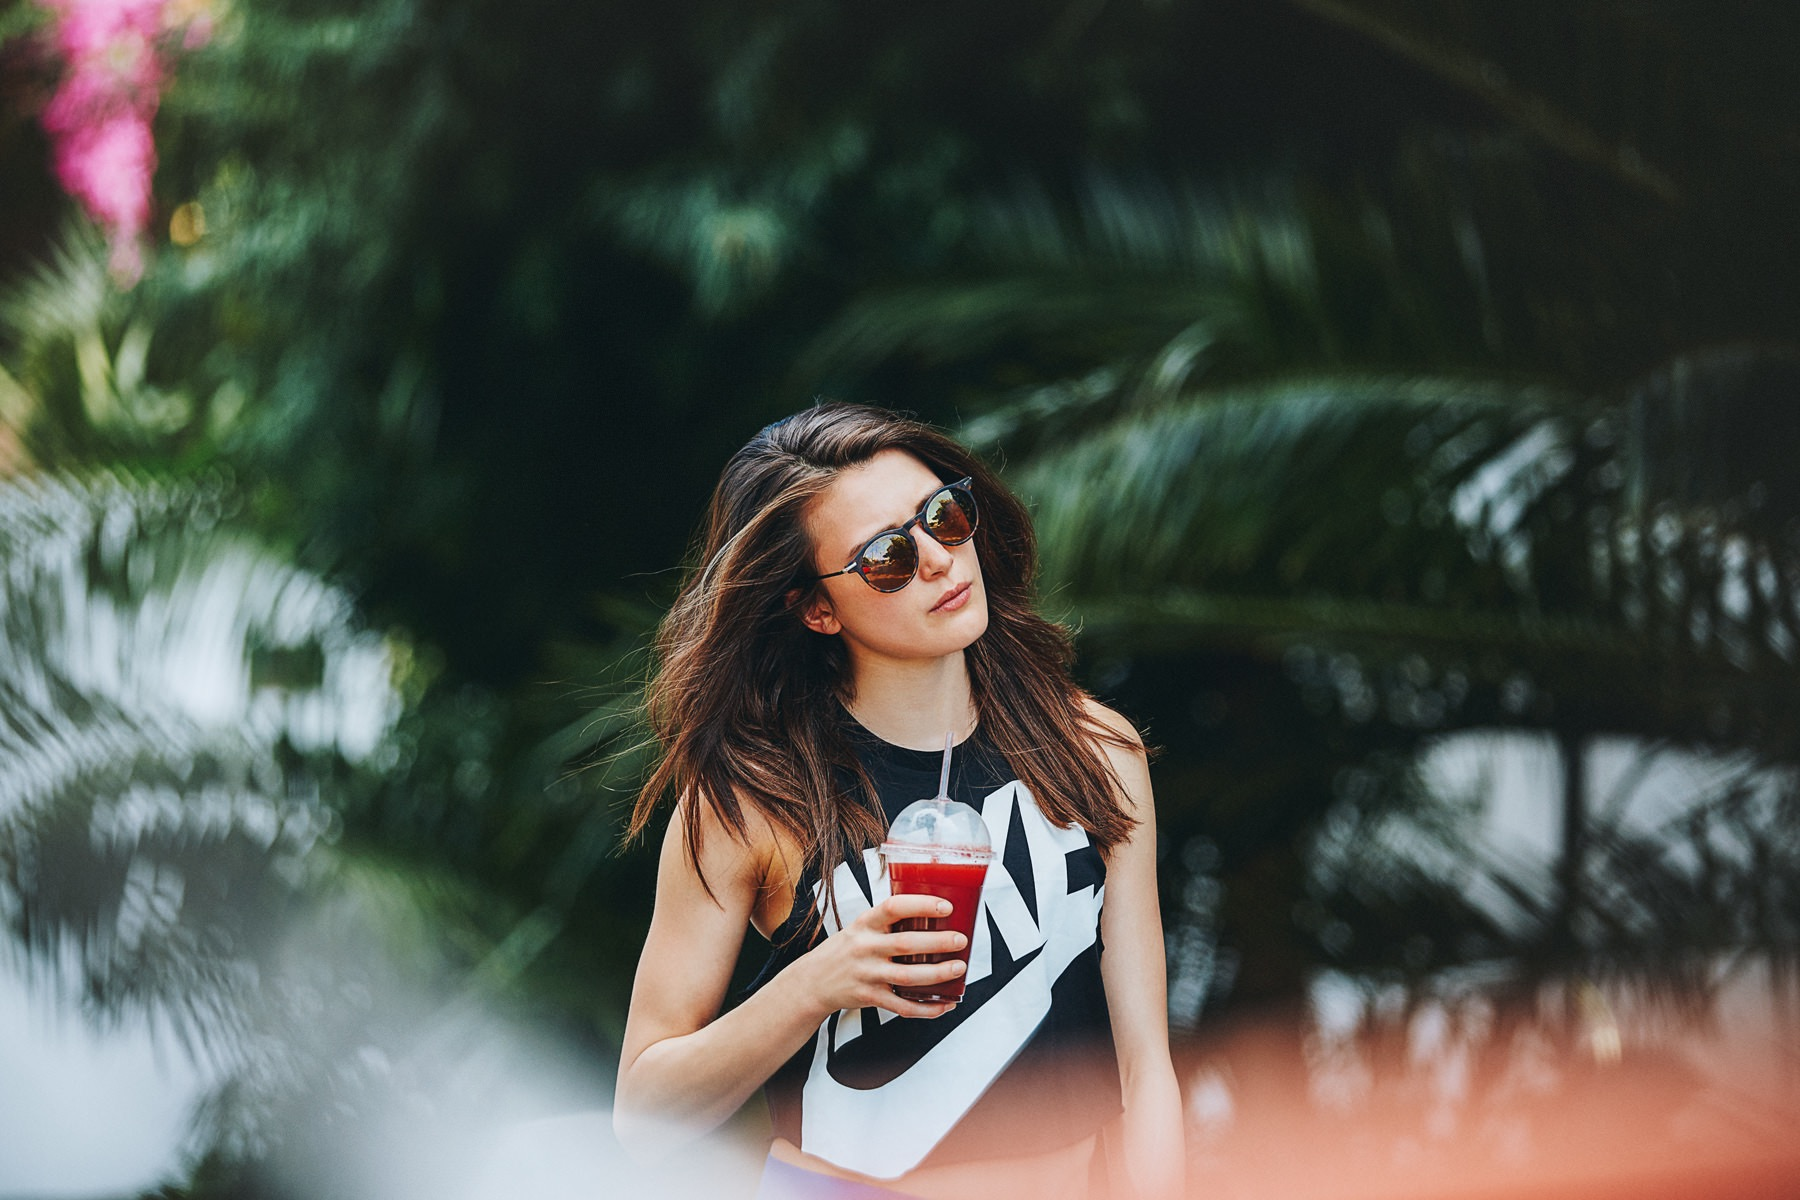 ­photo, photos, photography, photographer, photographers, woman, women, blur, blurred background, tree, trees, palm tree, palm trees, drink, sunglasses, nike, candid­photo, photos, photography, photographer, photographers, woman, women, blur, blurred background, tree, trees, palm tree, palm trees, drink, sunglasses, nike, candid